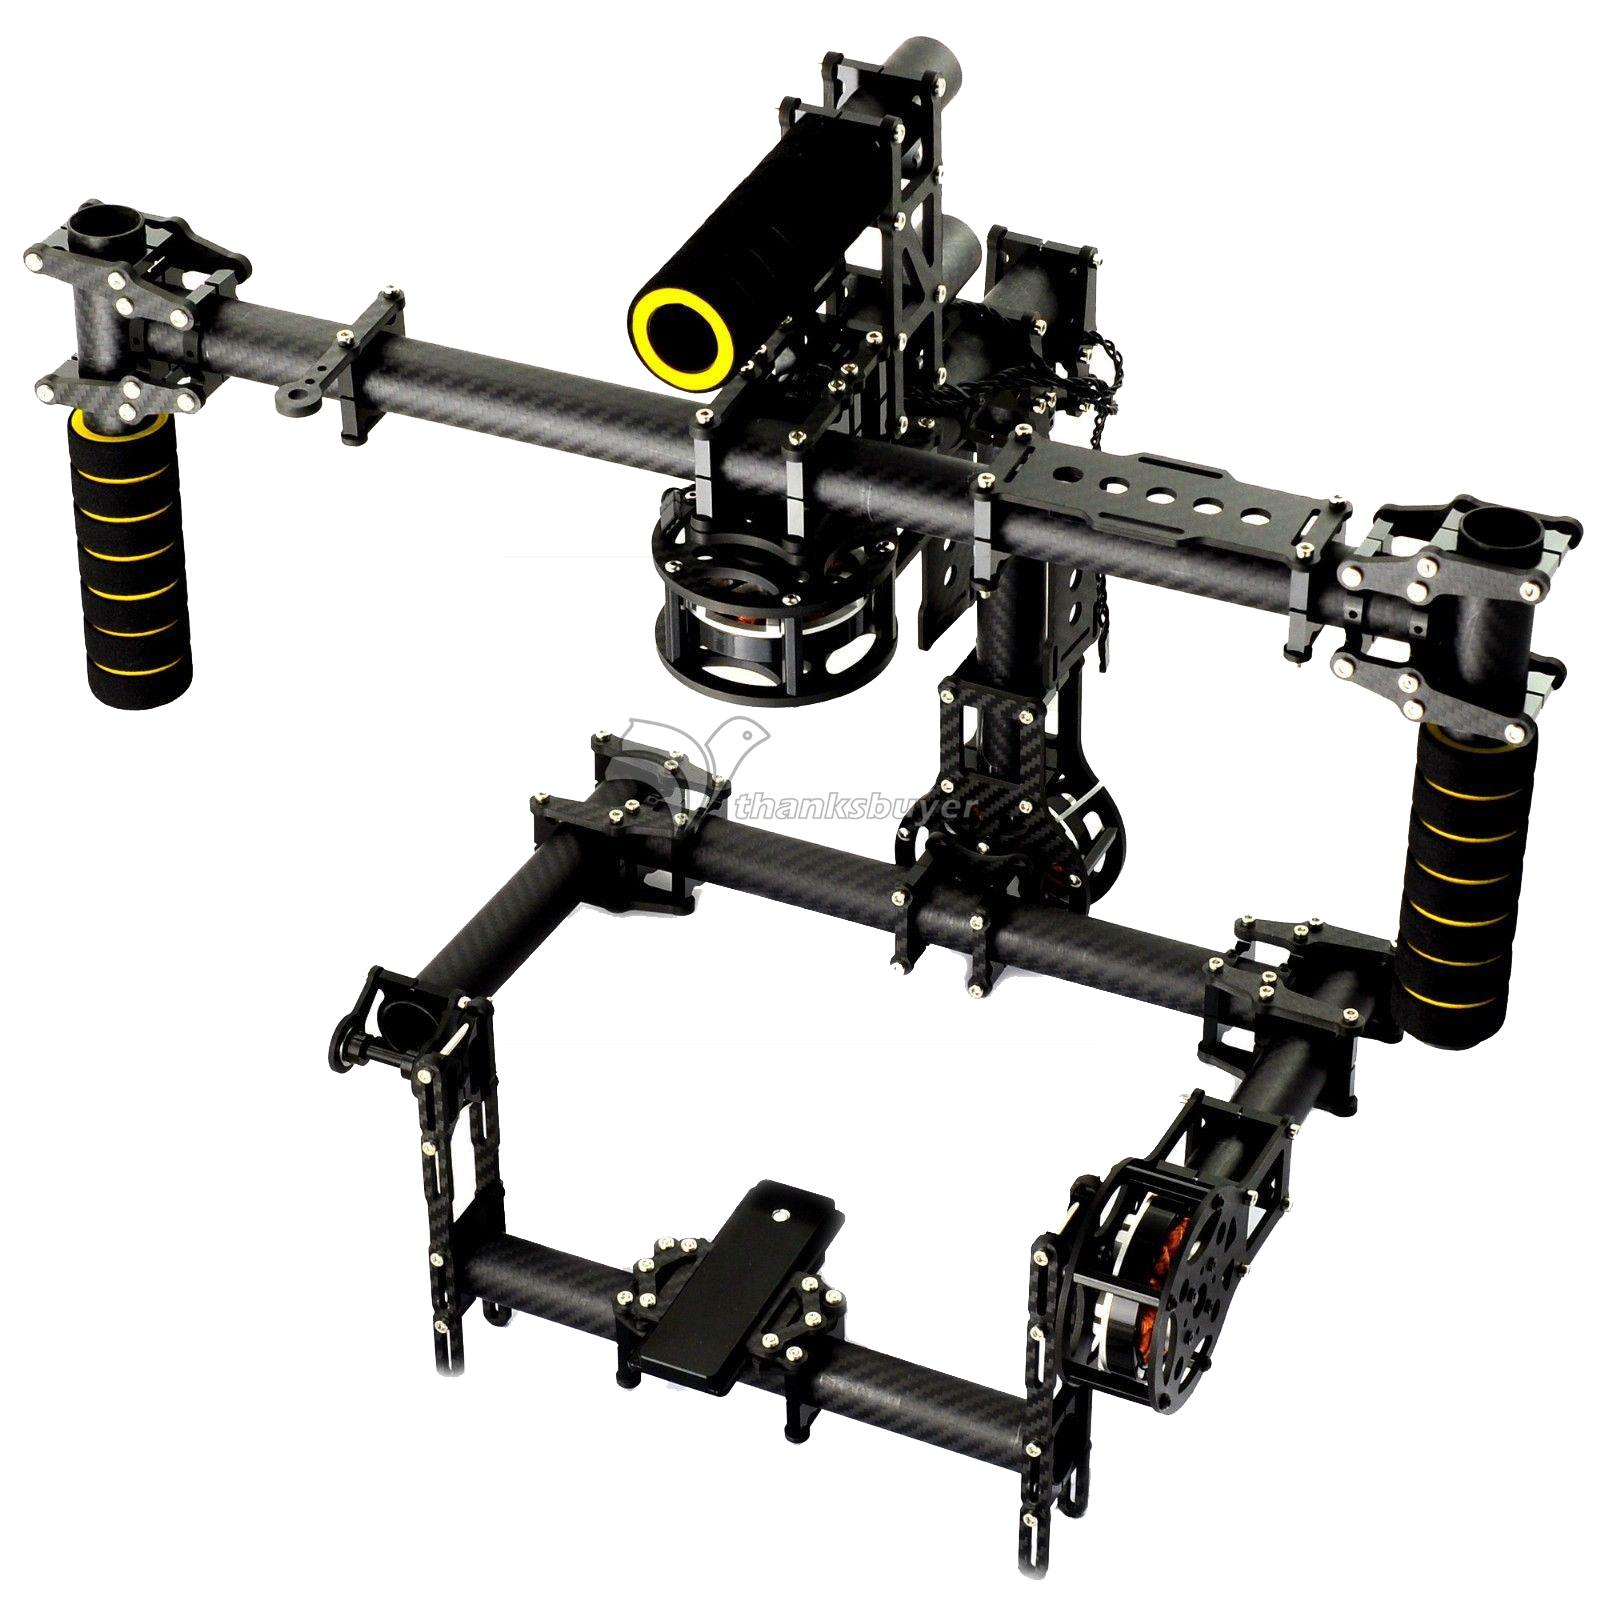 3 Axis Handheld Brushless Stabilizer Gimbal DSLR Camera Mount Handle PTZ with Motor Controller new 10 1 inch best quality me302kl lcd for asus memo pad fhd10 me302 lcd display touch screen digitizer assembly